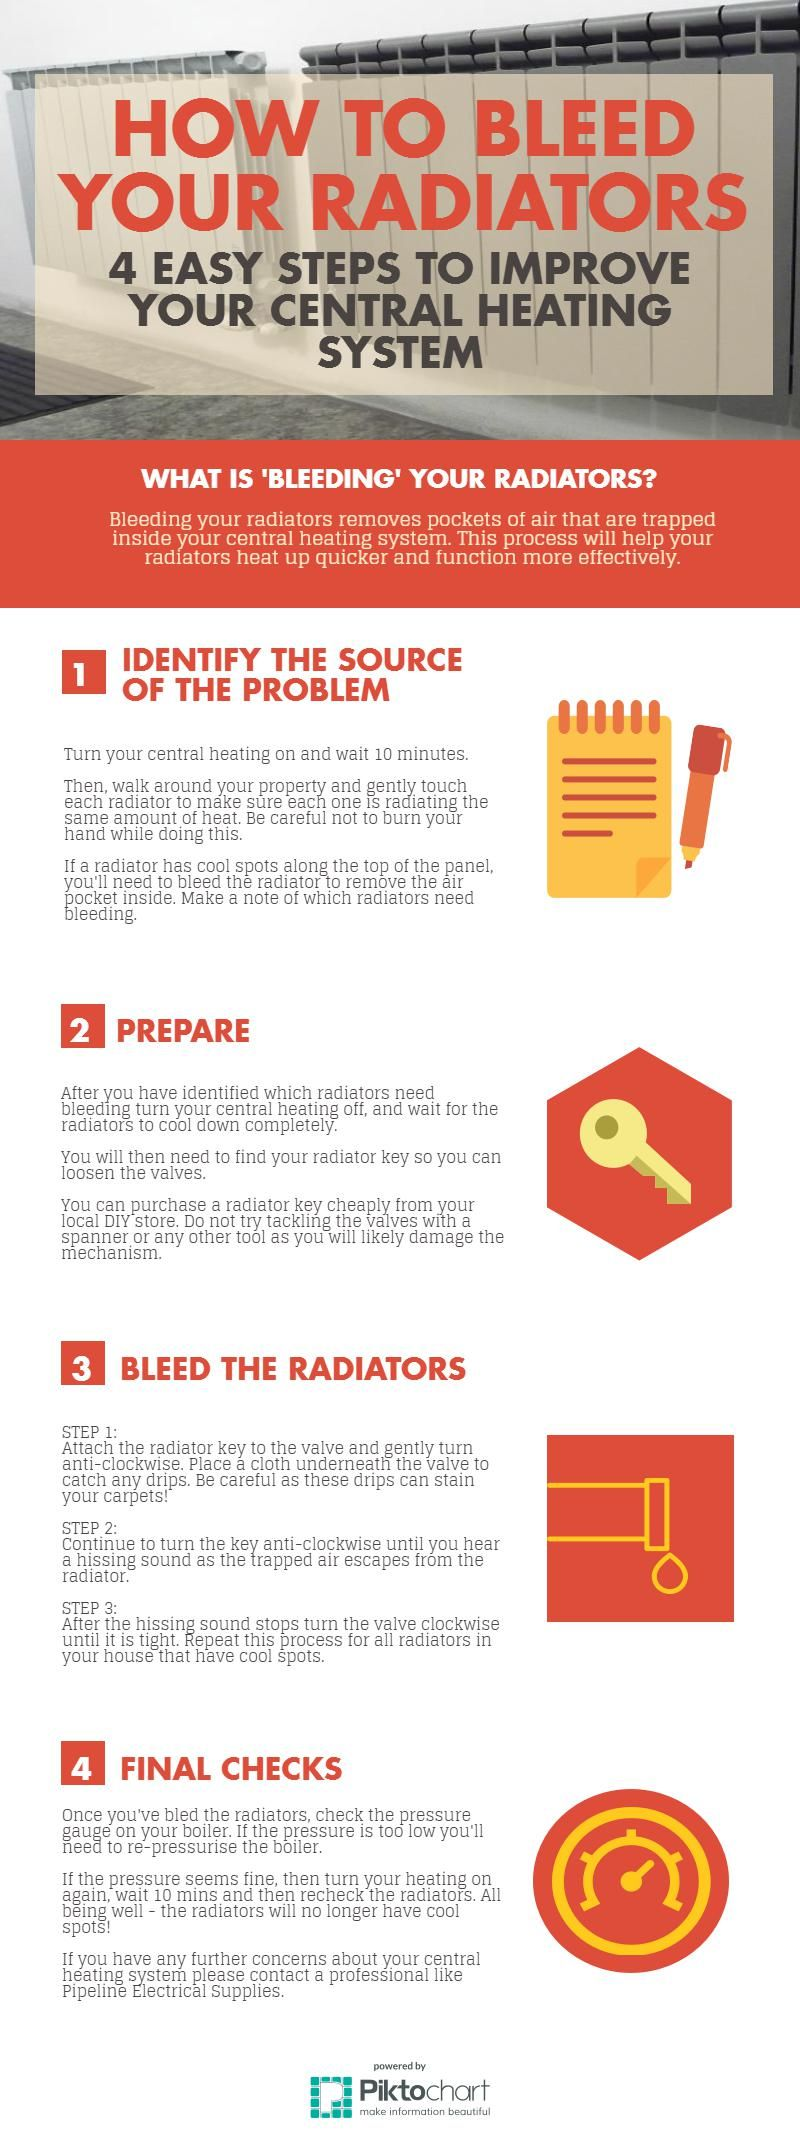 4 Easy DIY Steps To Bleeding Your Radiators To Improve Your Central ...